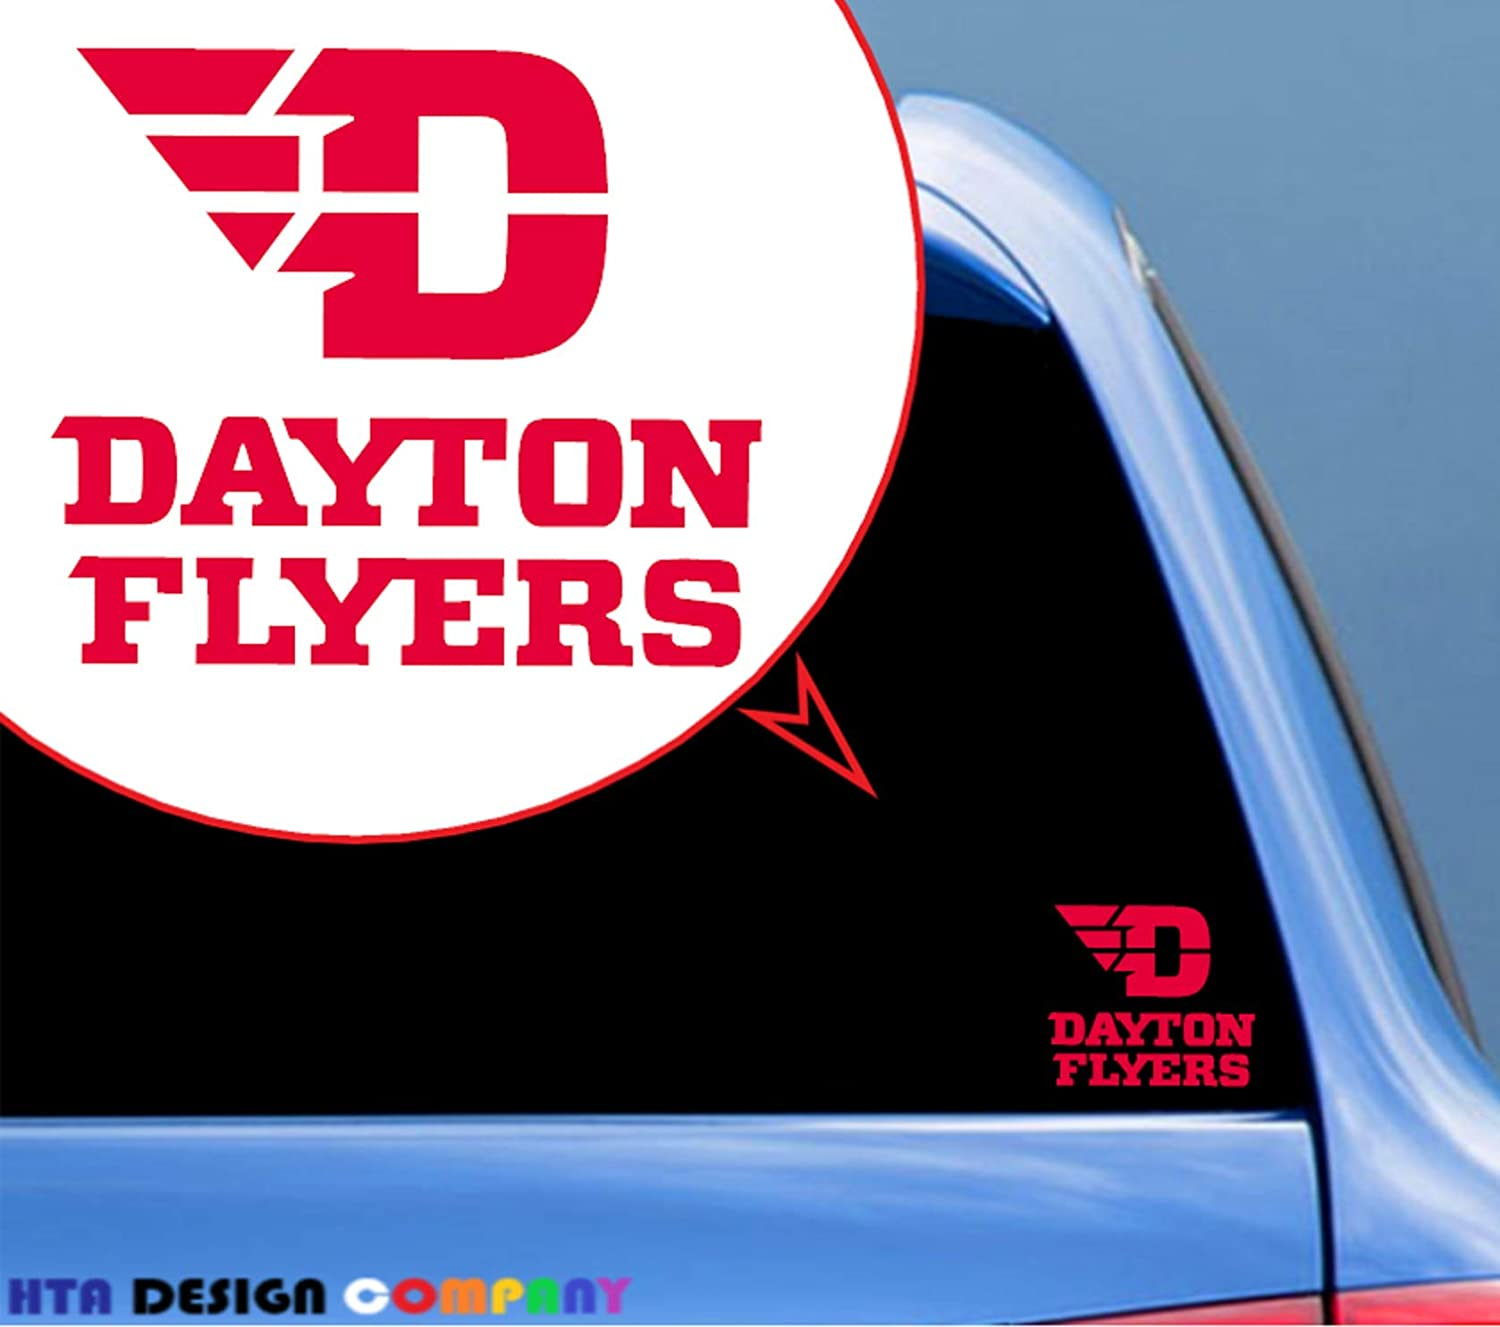 HTA Custom Decals University of Dayton Flyers/Vinyl Transfer Sticker Decal for Car/Truck/Jeep/Window/Bumper/Laptop/Phone Decor/Home Decoration/Motorcycle(4 in x 4.5 in) - Red